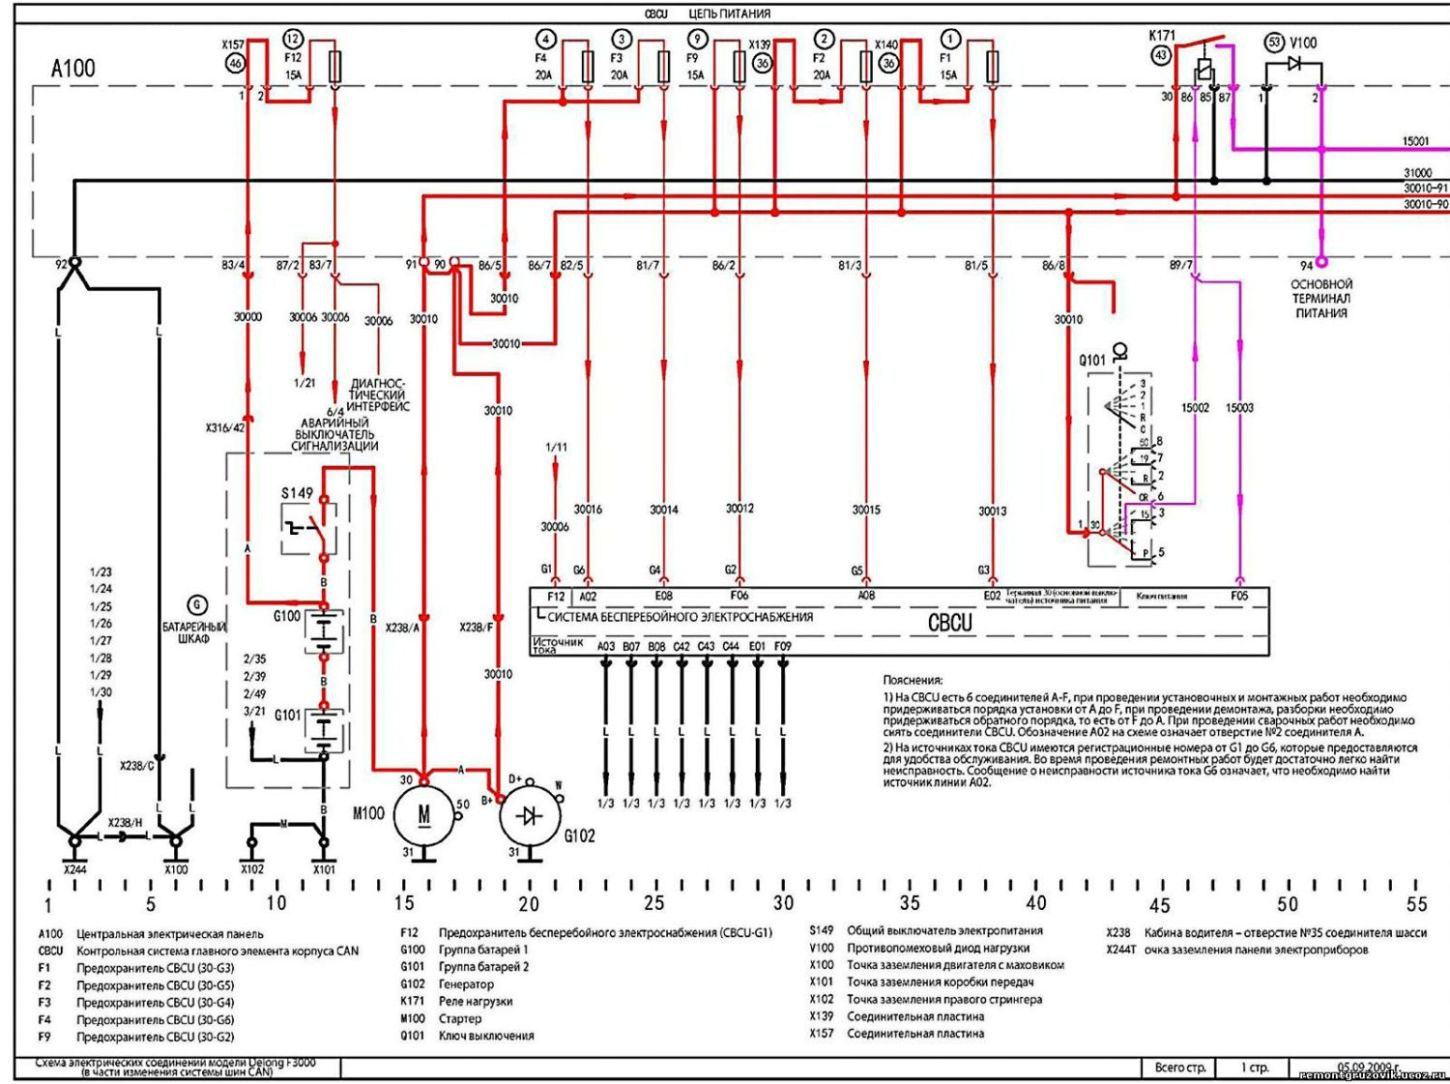 case ih wiring diagram delta monitor shower faucet 81 shaanxi trucks service manuals free download - pdf truck handbooks, diagrams ...